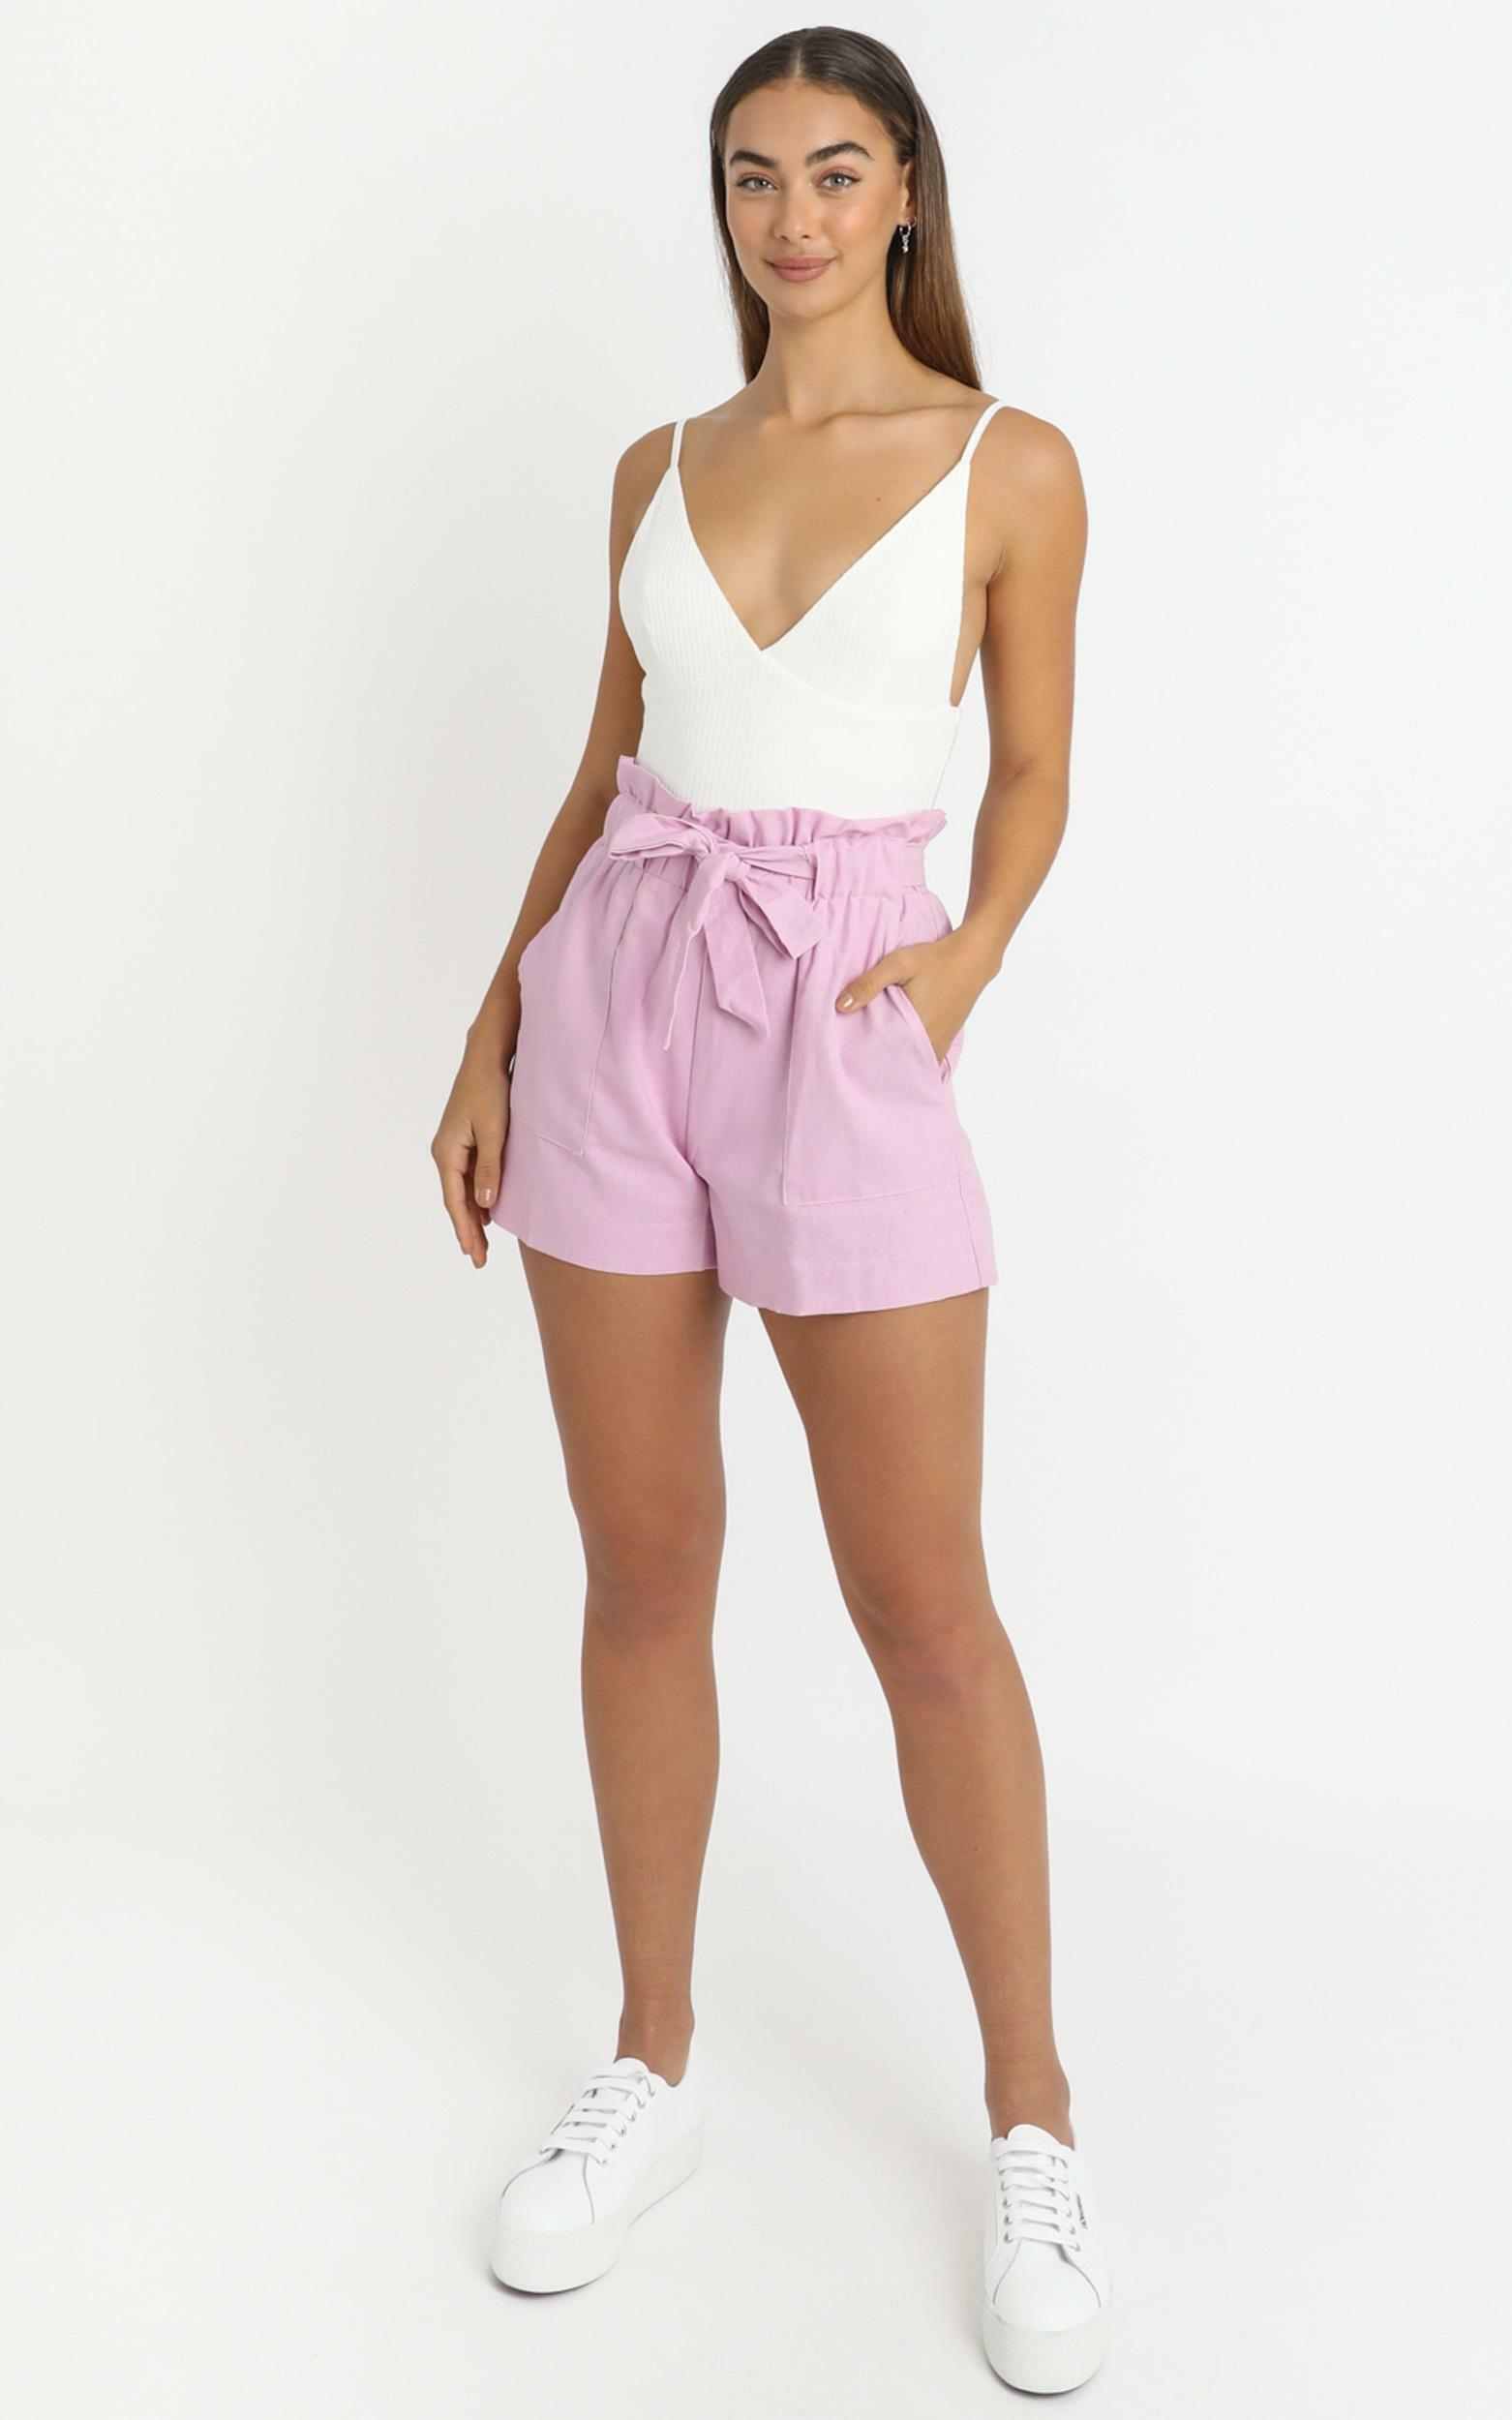 All Rounder Shorts in lilac check - 14 (XL), Purple, hi-res image number null